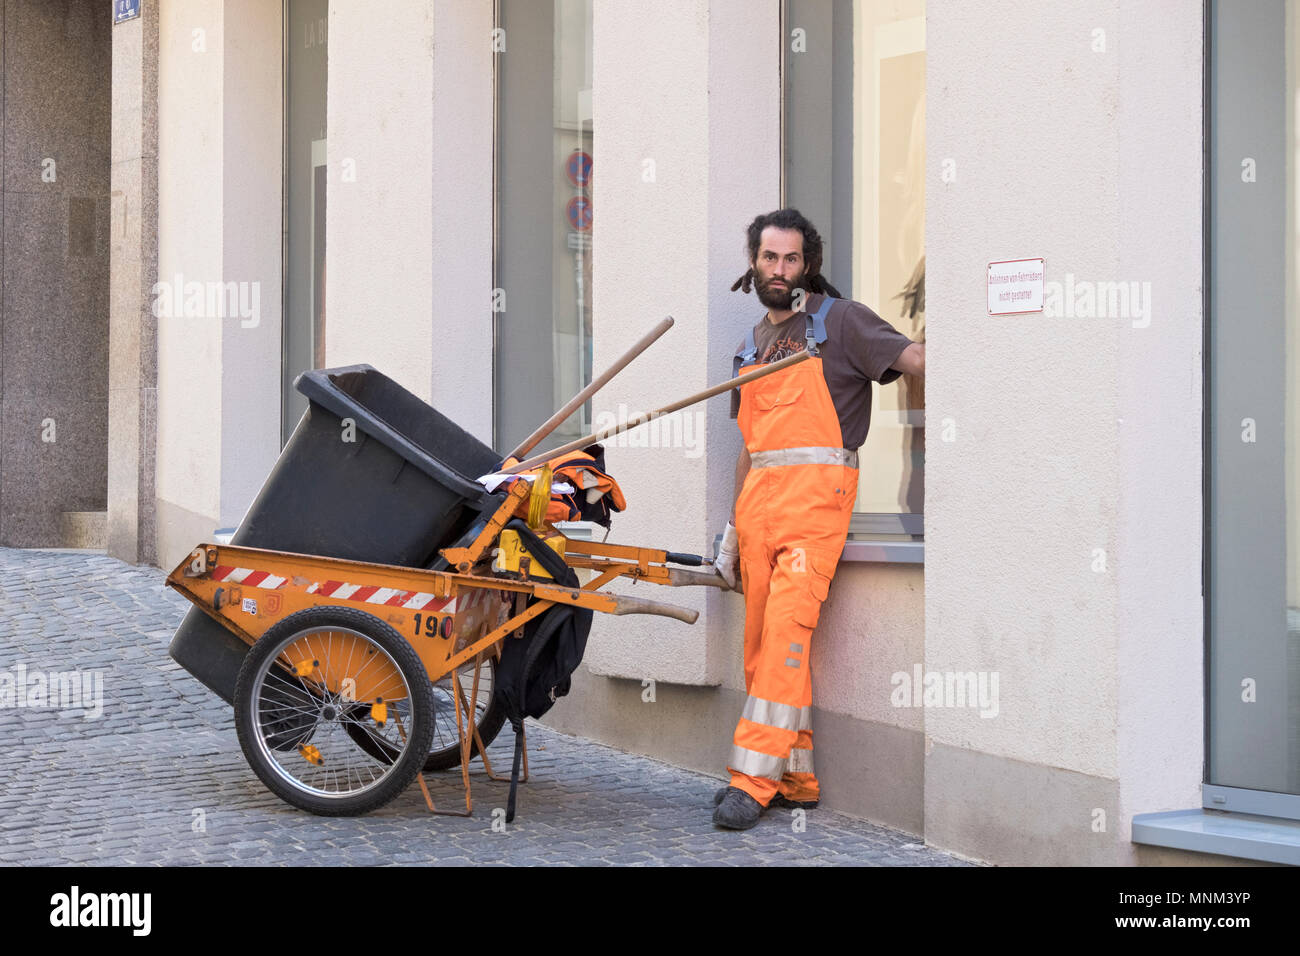 A sanitation man in a  reflective uniform takes a break in Regensburg, Germany. - Stock Image